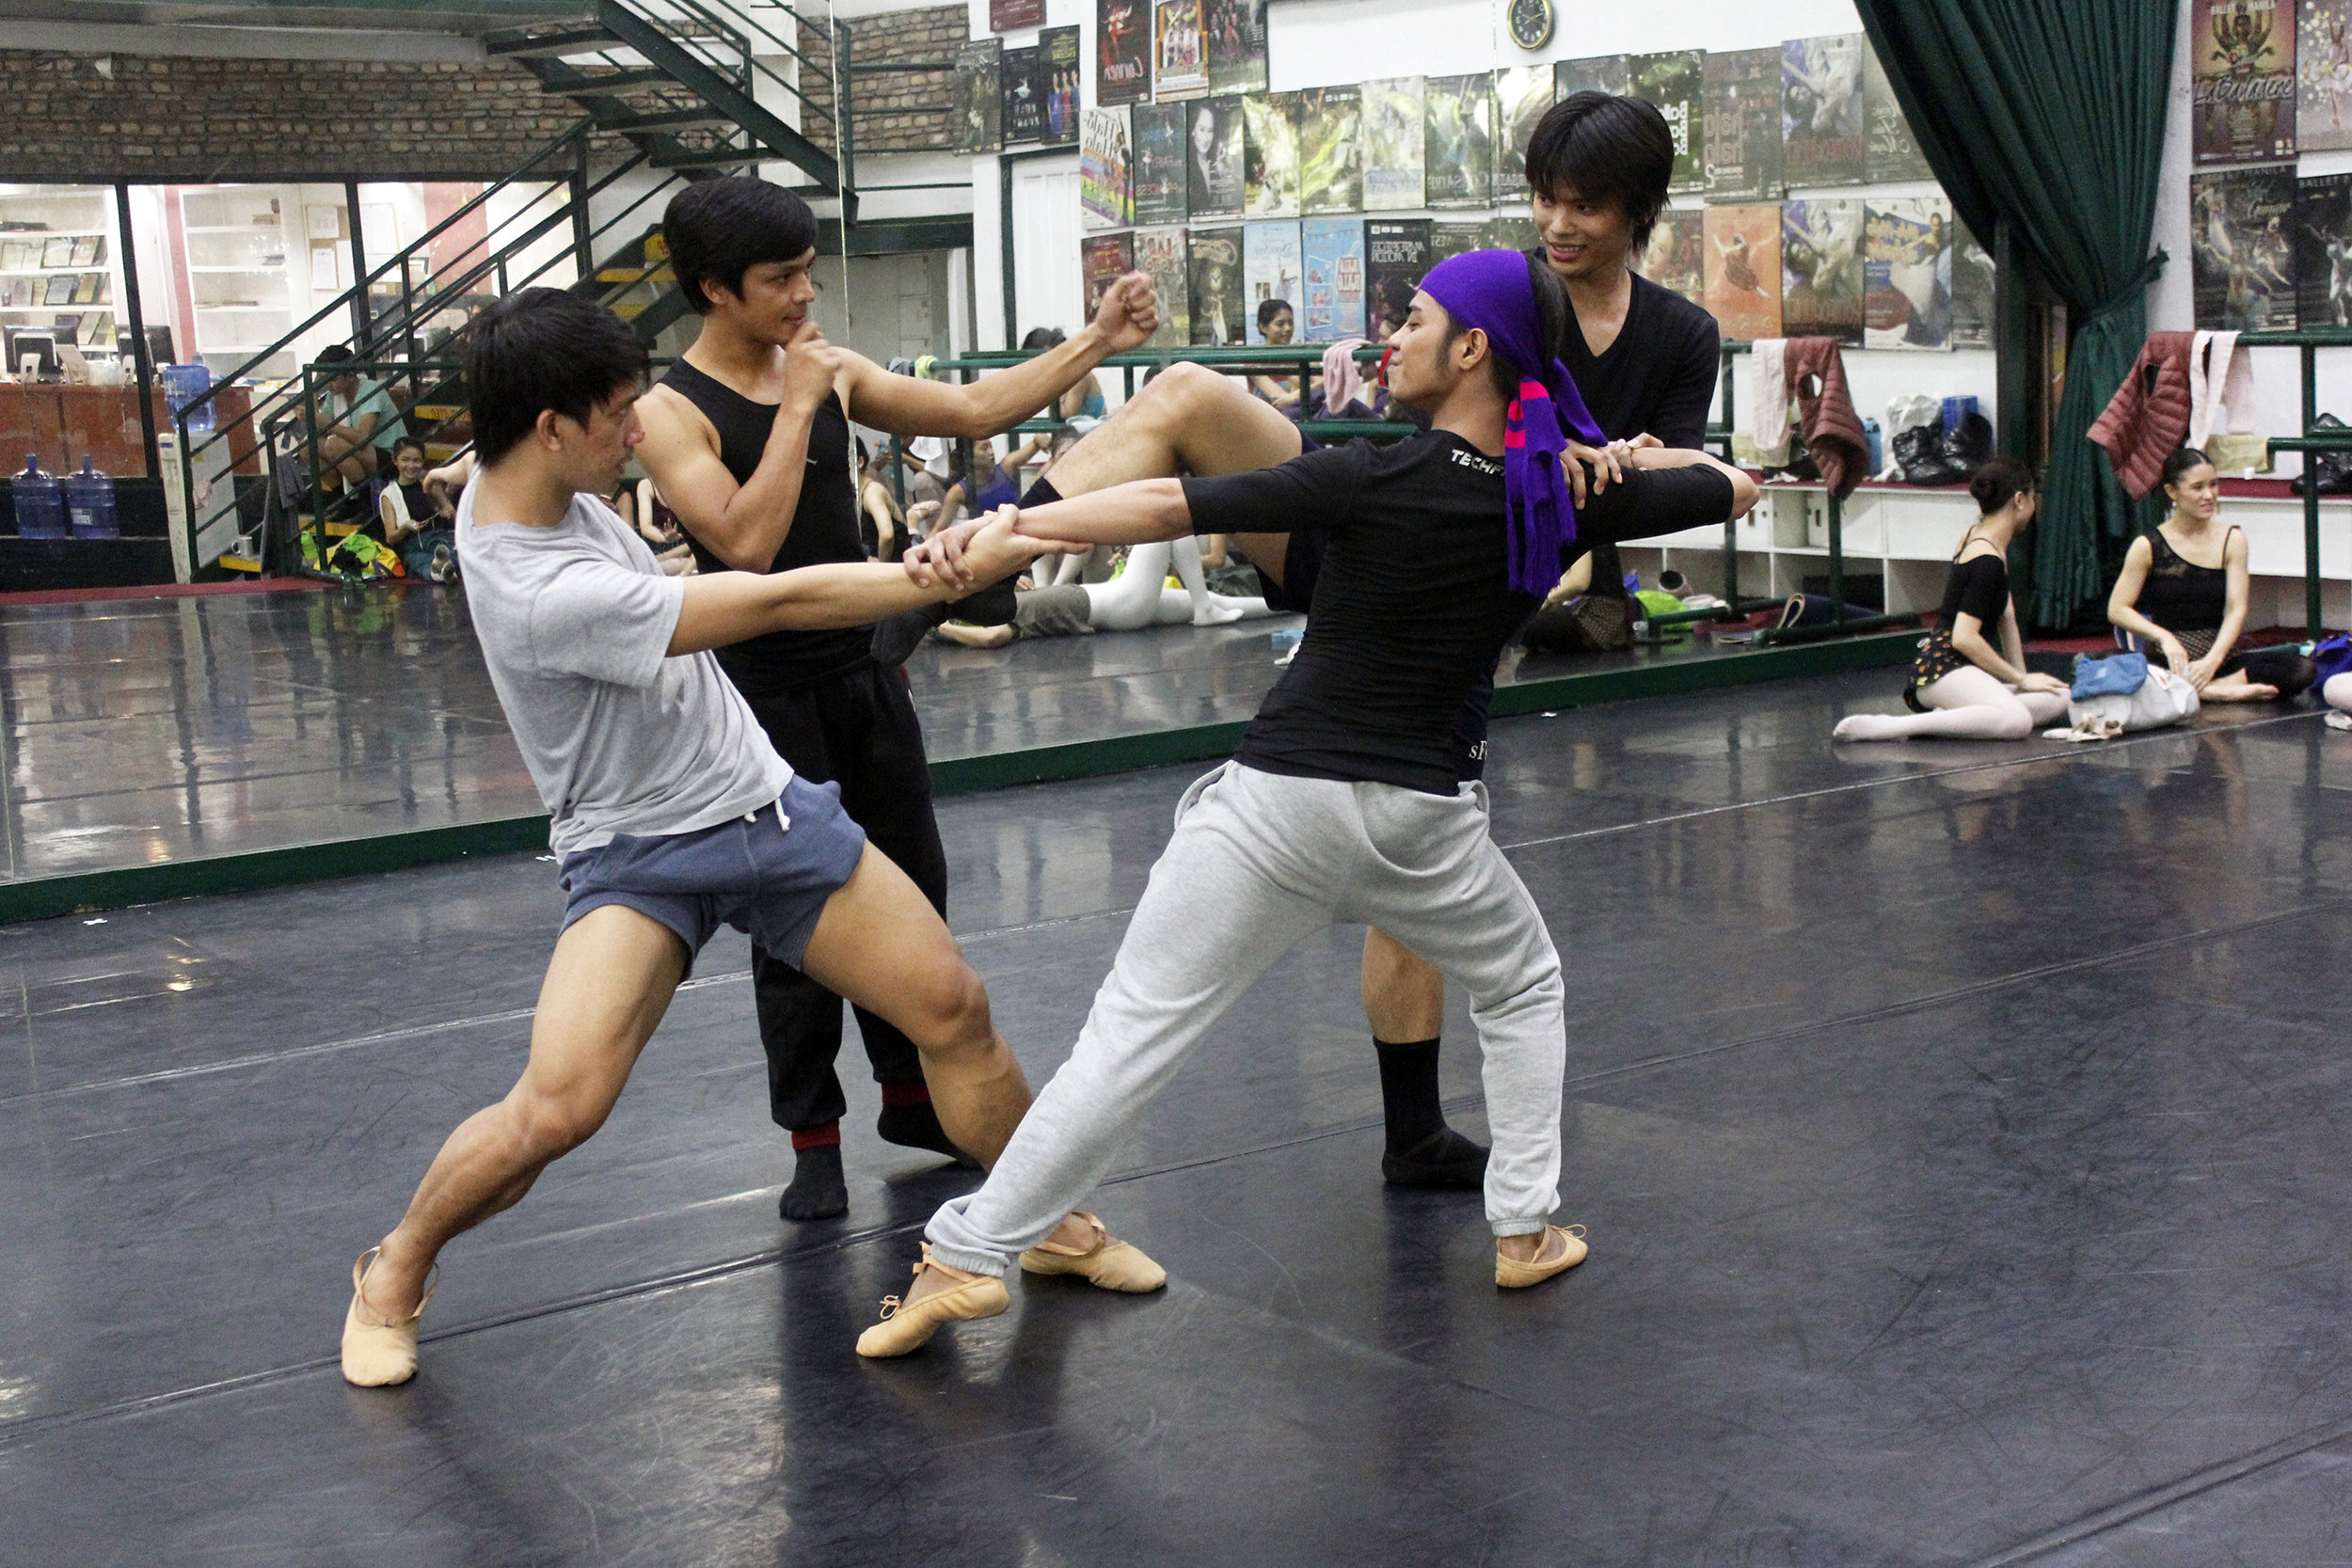 The second cast of    Ibong Adarna  rehearses with choreographer Gerardo Francisco (second from left). In photo are (from left) Rudolph Capongcol, Anselmo Dictado and Elpidio Magat as the three princes. Photo by Jimmy Villanueva